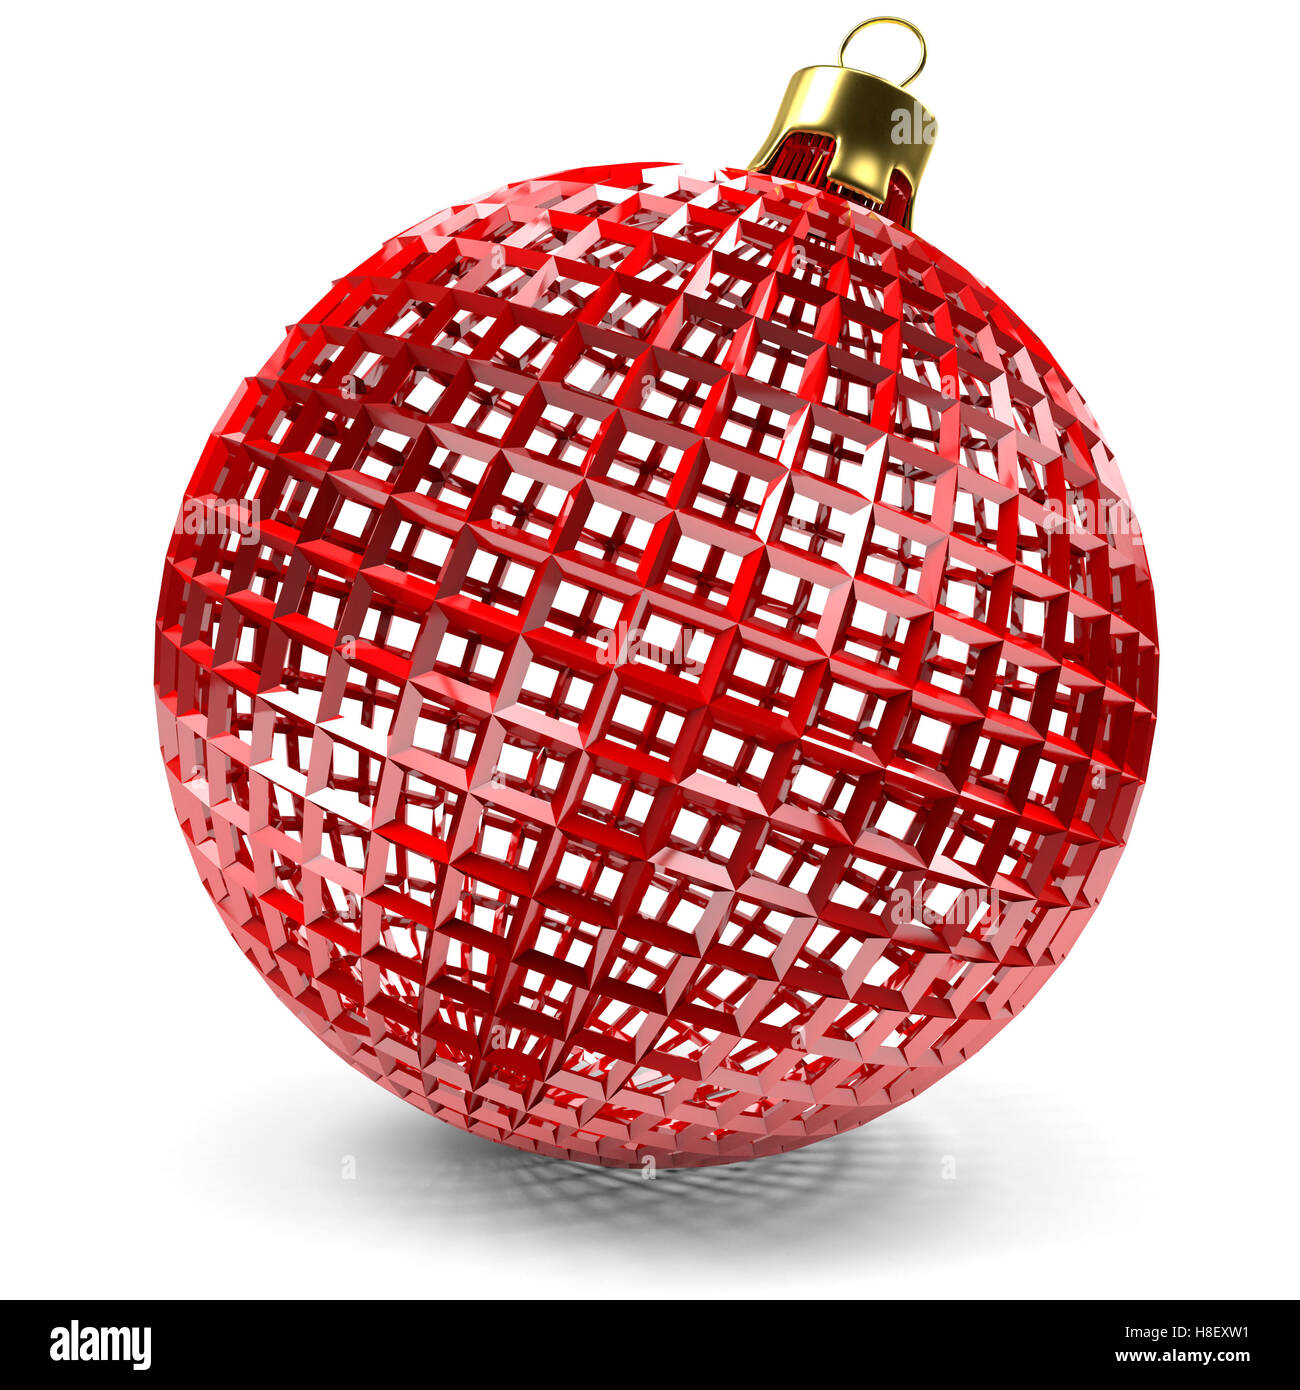 closeup of the red openwork Christmas bauble, 3d rendering - Stock Image